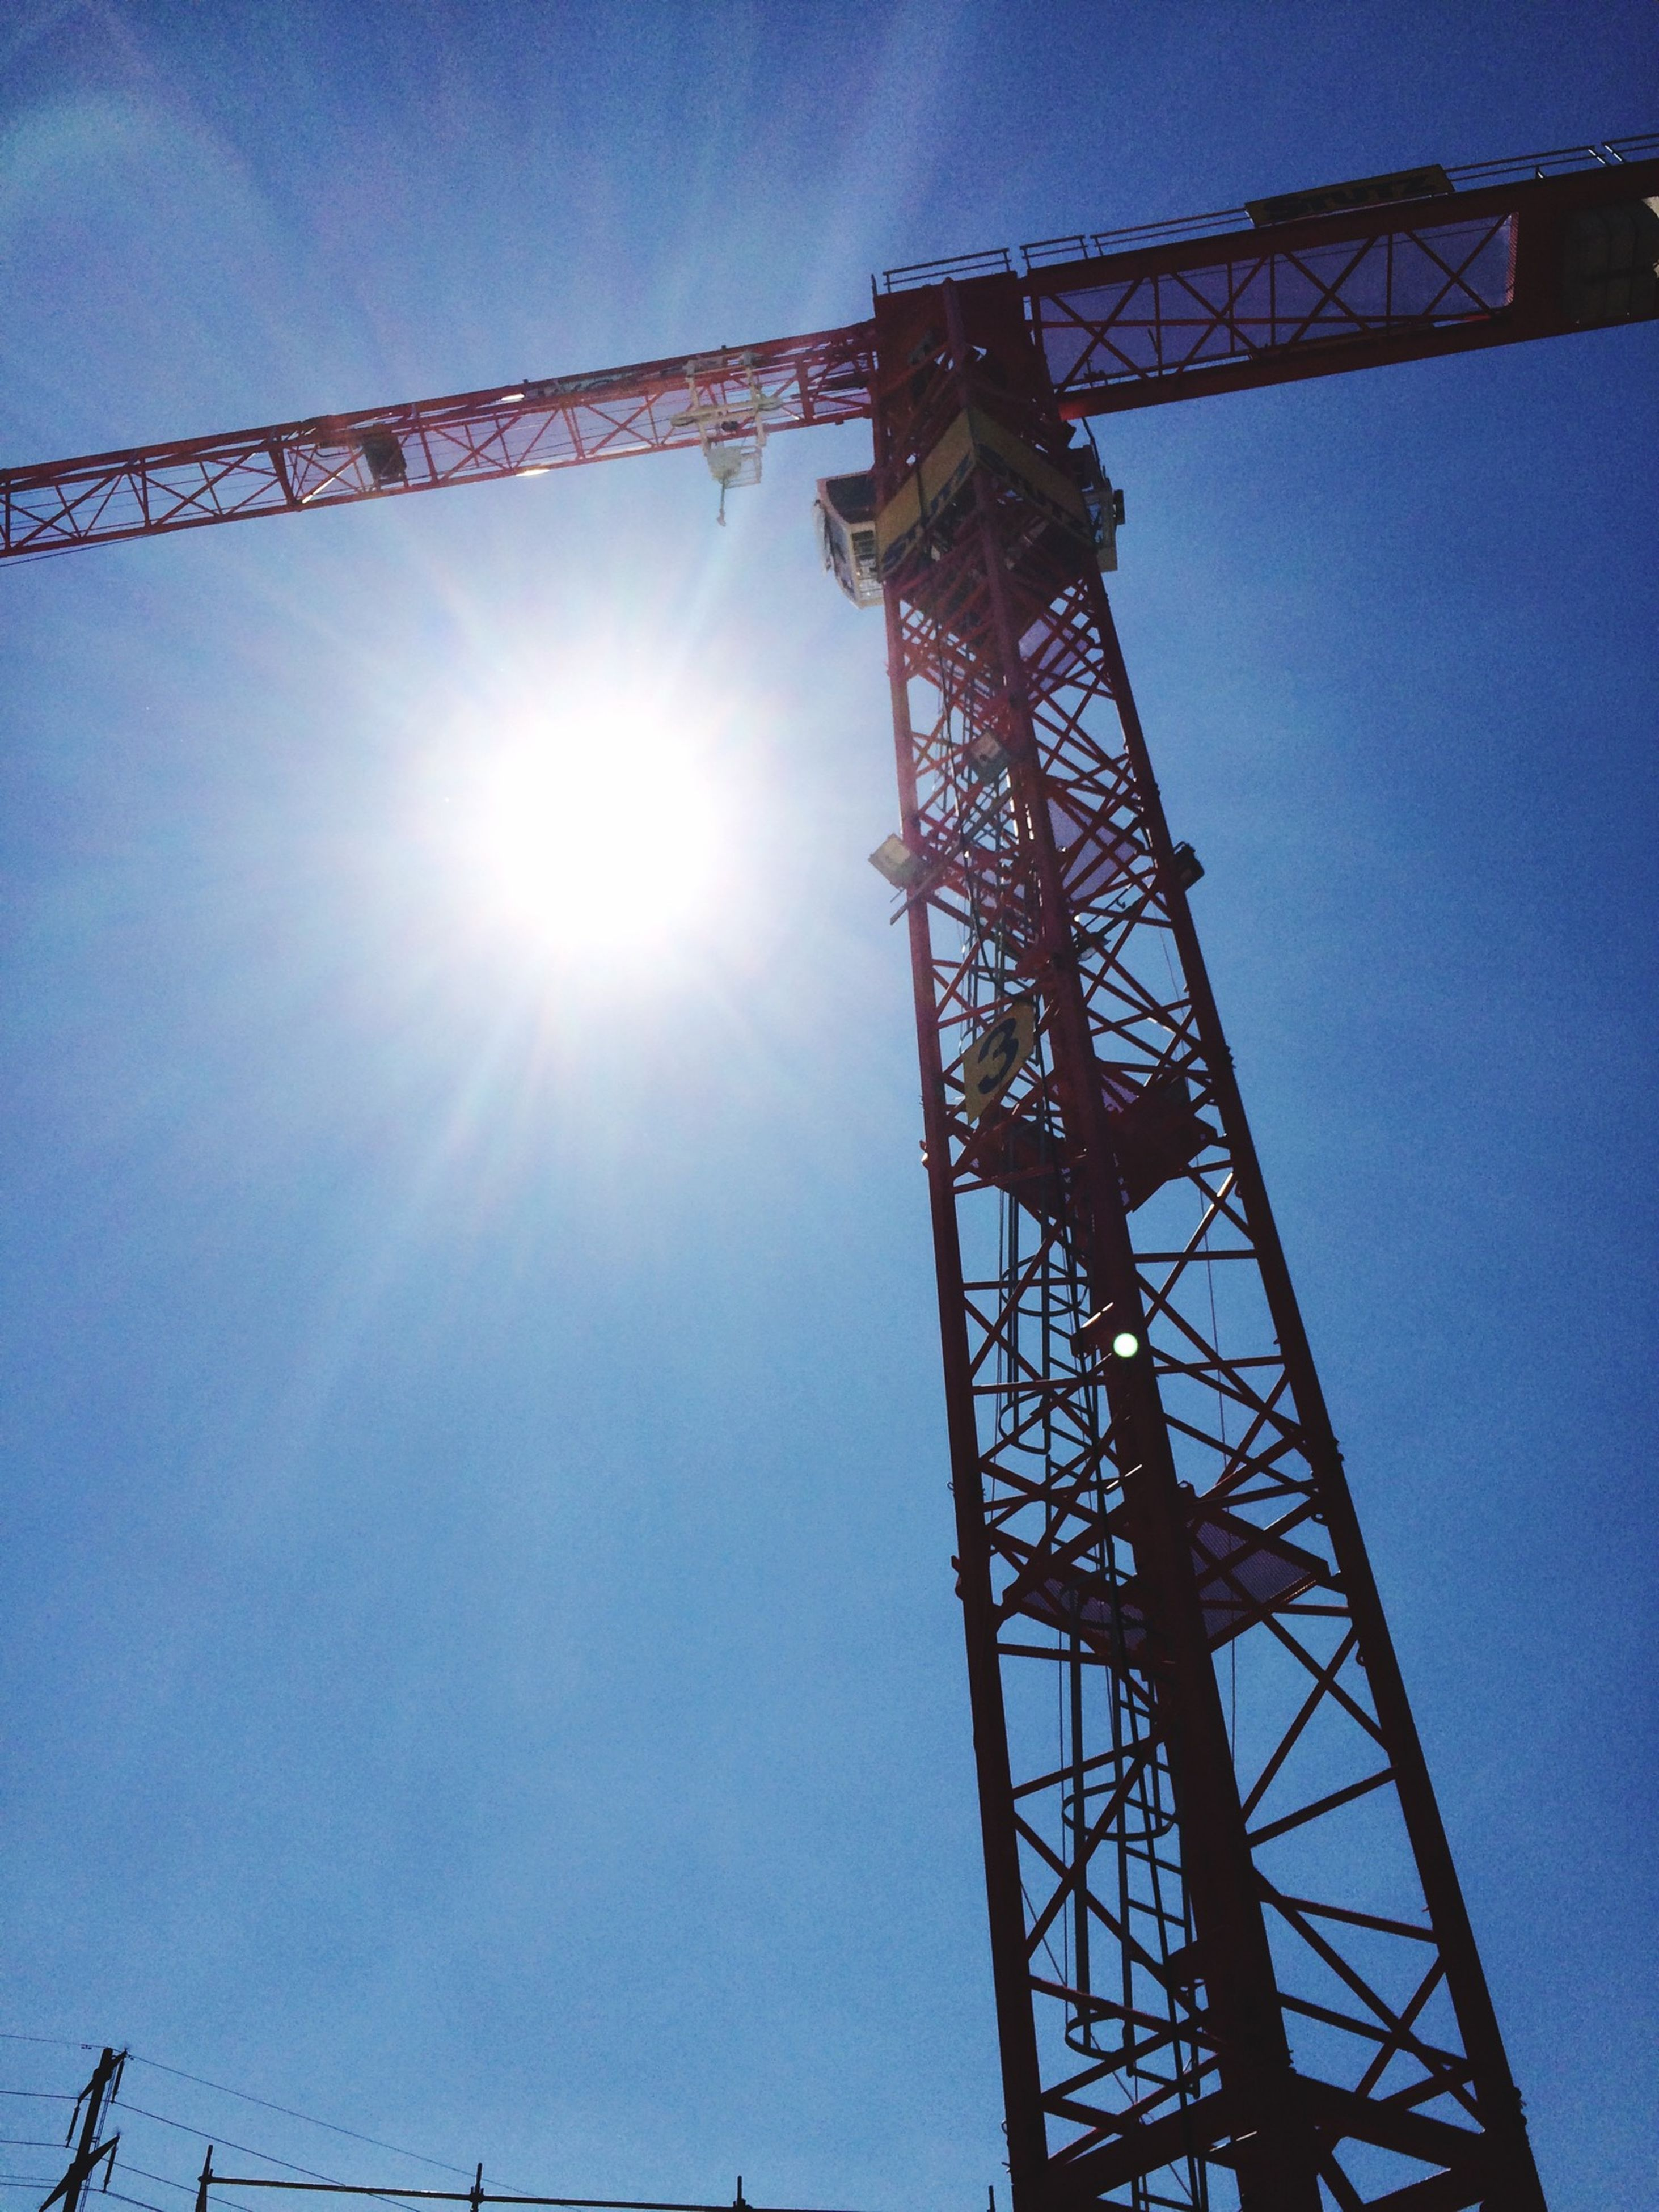 low angle view, sun, sunbeam, sunlight, built structure, lens flare, clear sky, sky, blue, crane - construction machinery, architecture, silhouette, tall - high, fuel and power generation, metal, construction site, day, outdoors, tower, no people